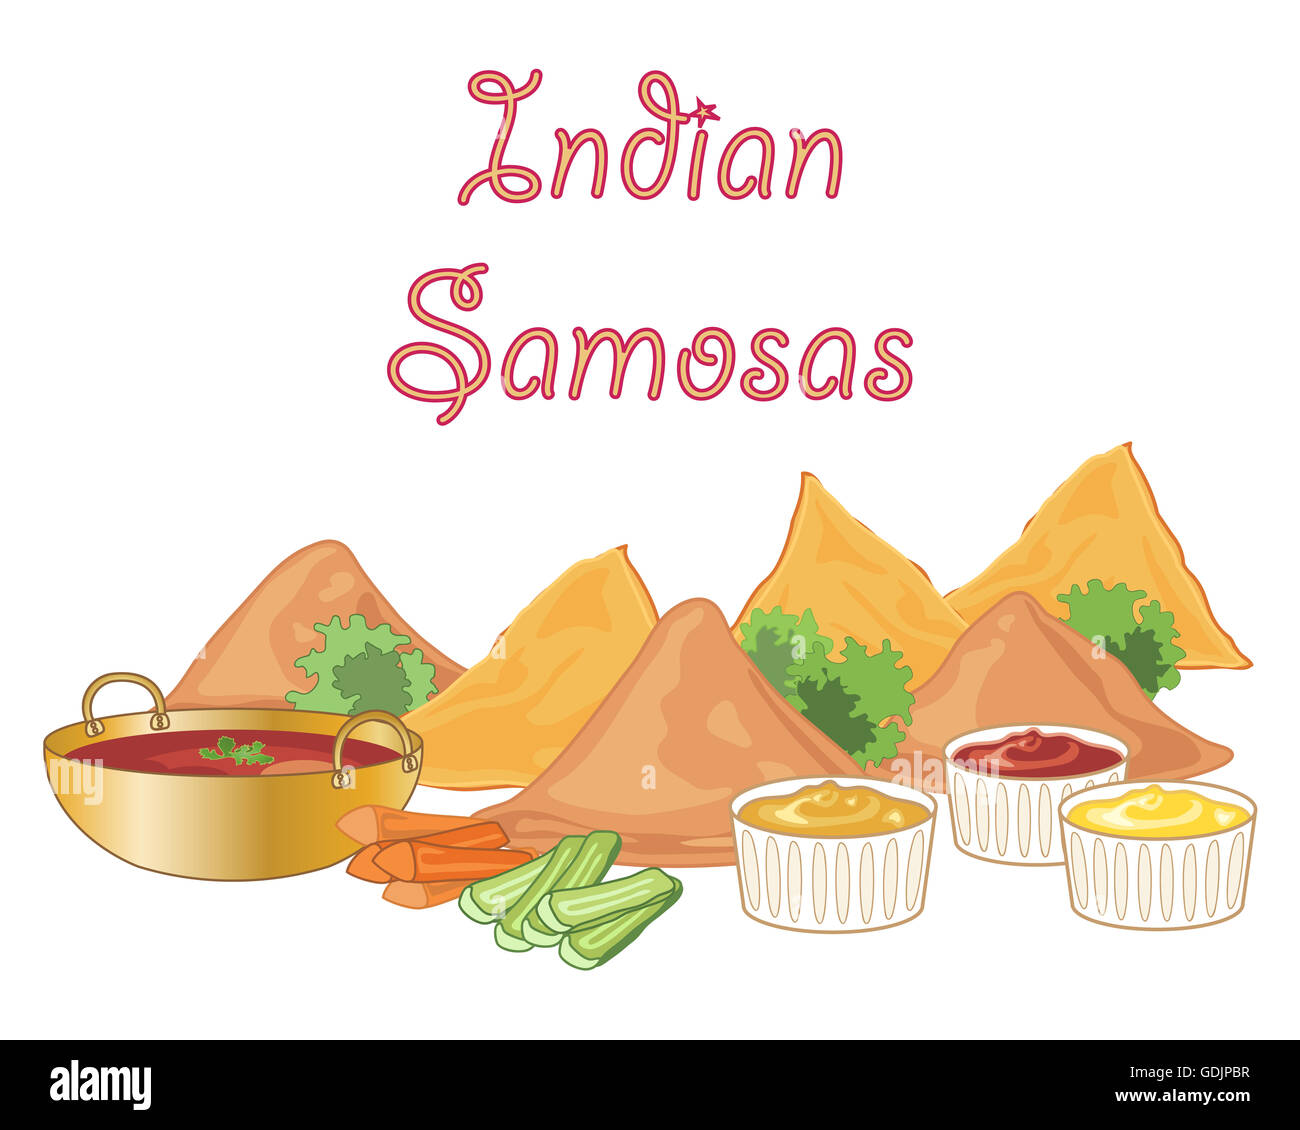 an illustration of some samosa snack food with dipping sauces and vegetable sticks with garnish on a white background - Stock Image